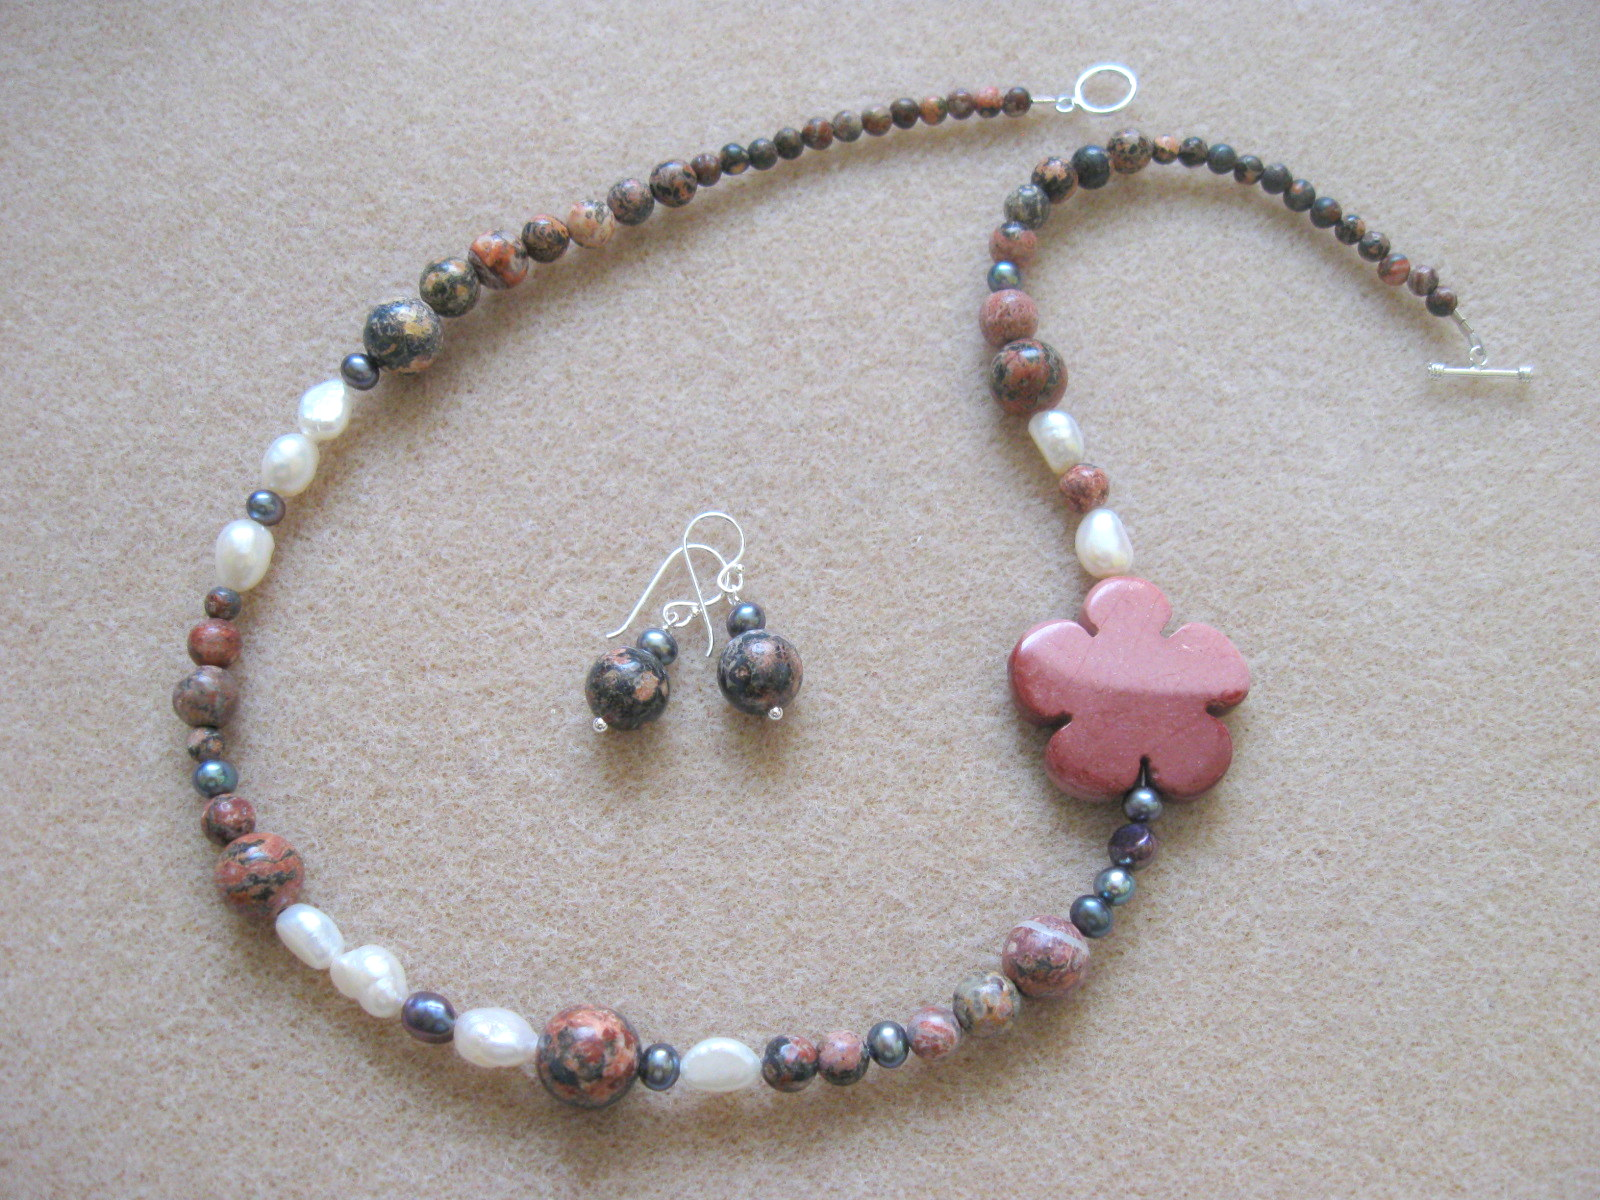 Jasper and freshwater pearls set